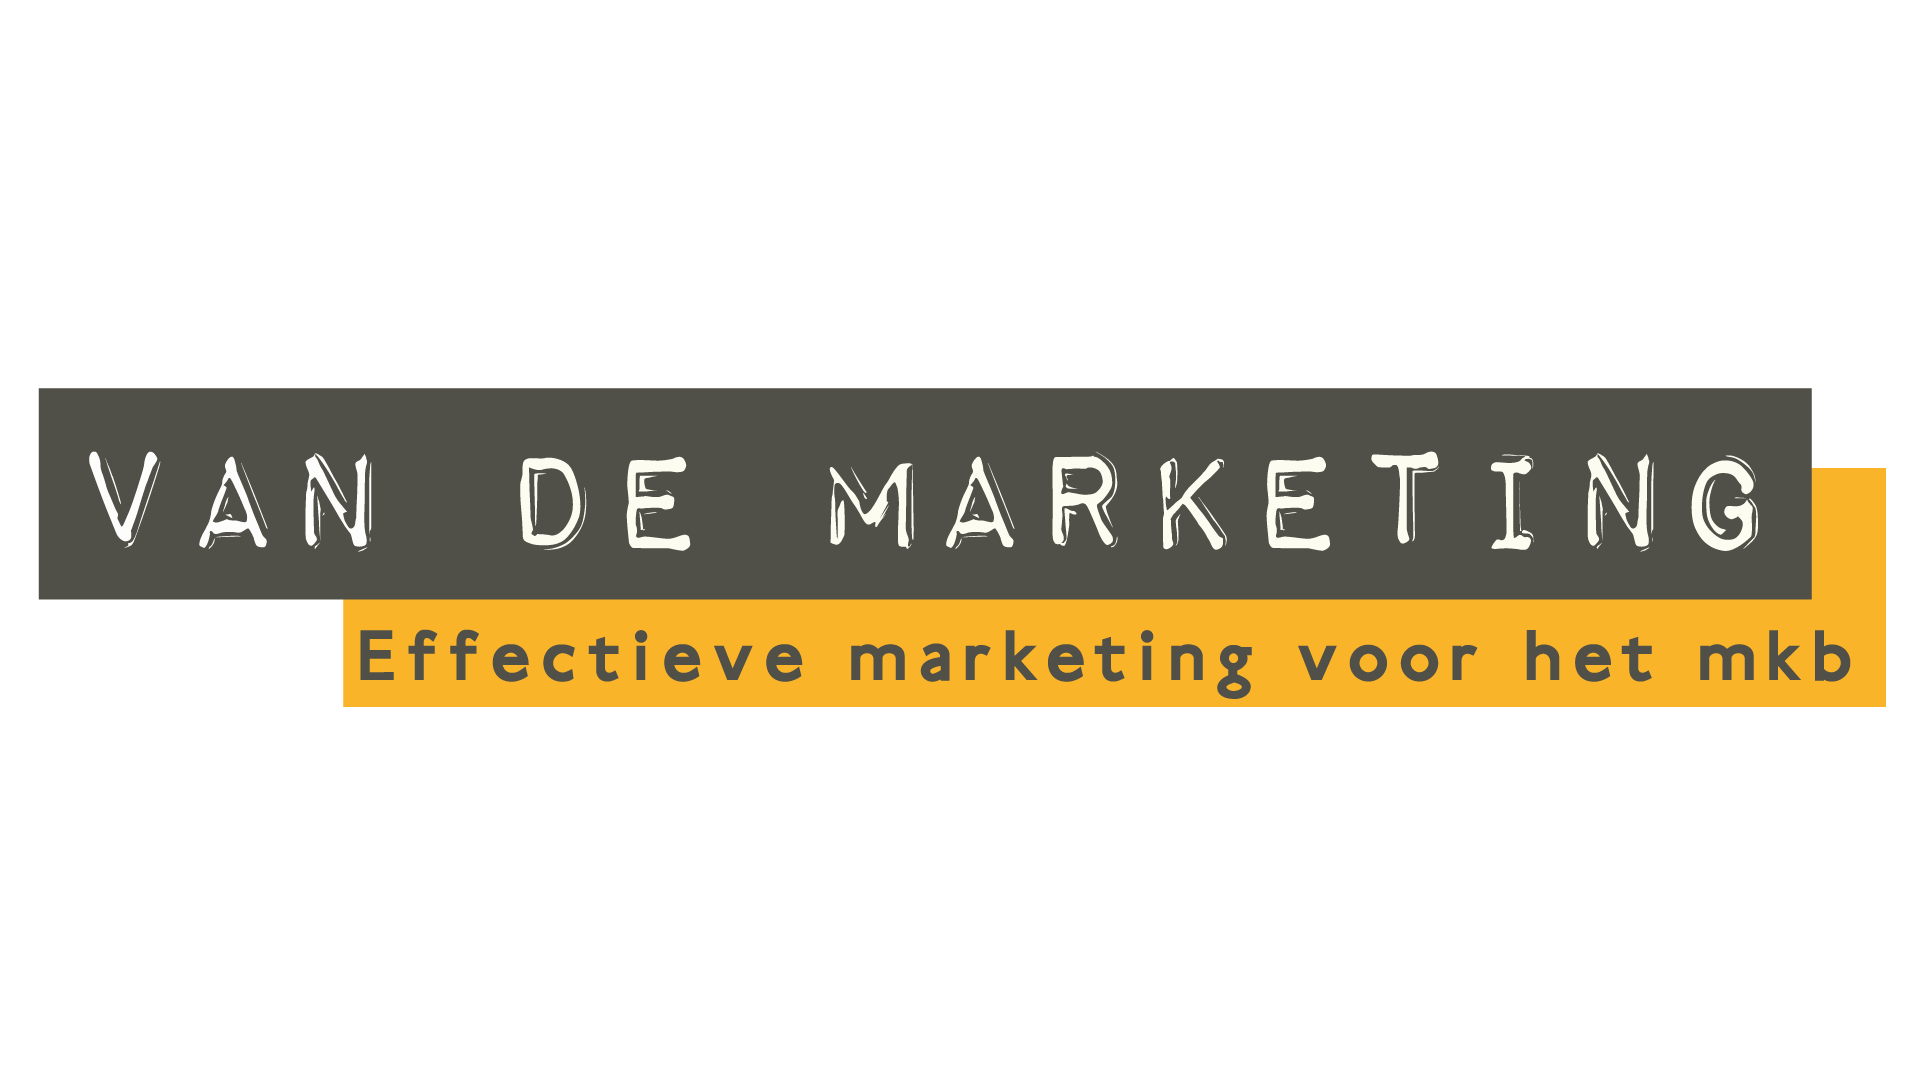 Van de Marketing